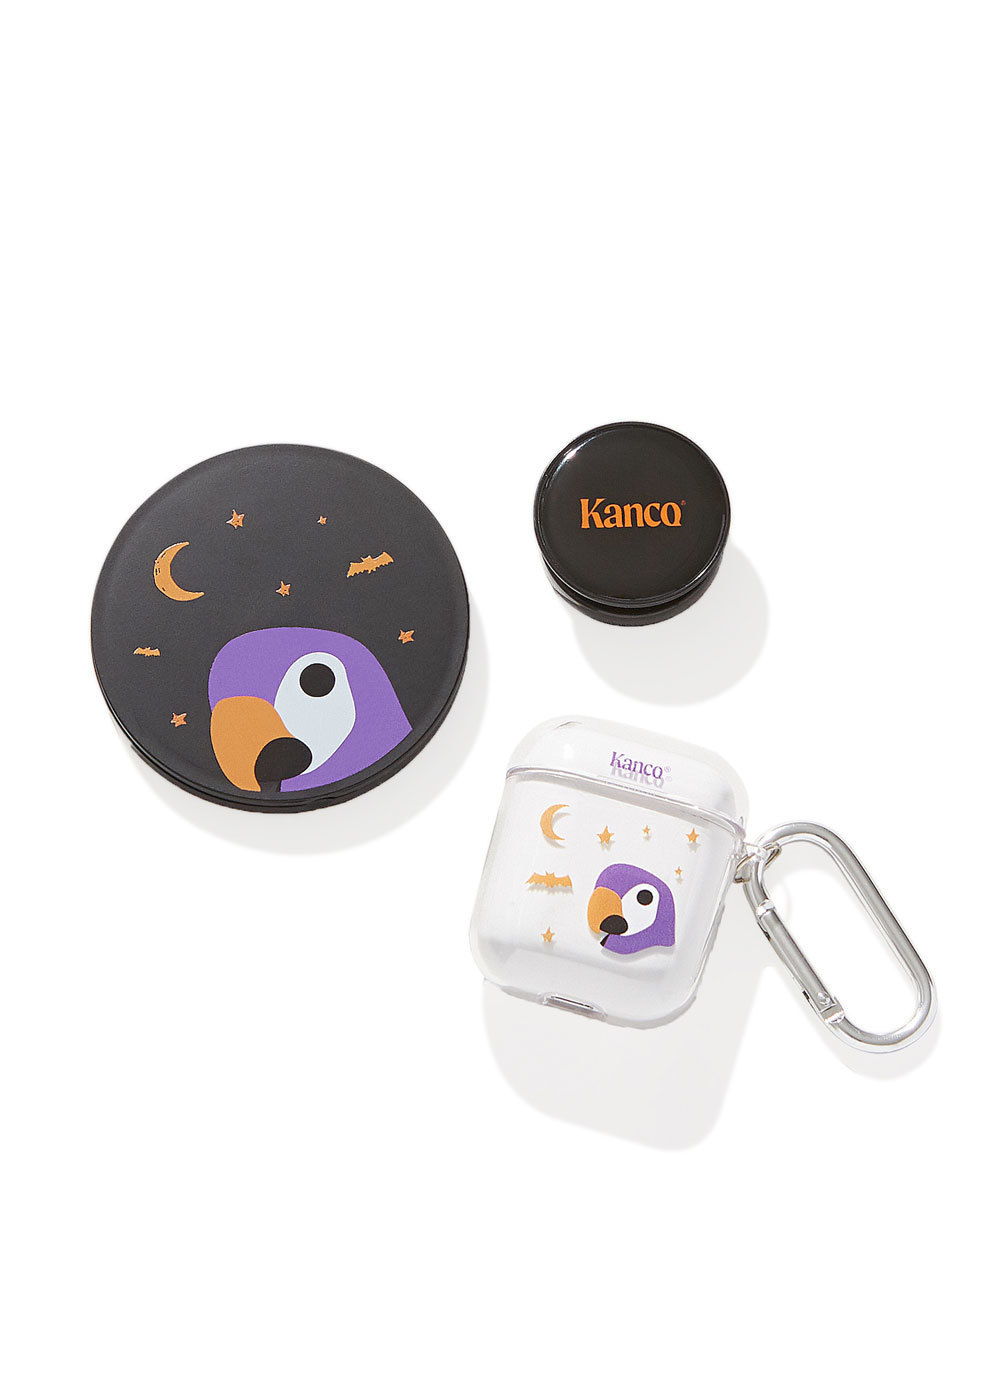 KANCO HALLOWEEN PACKAGE